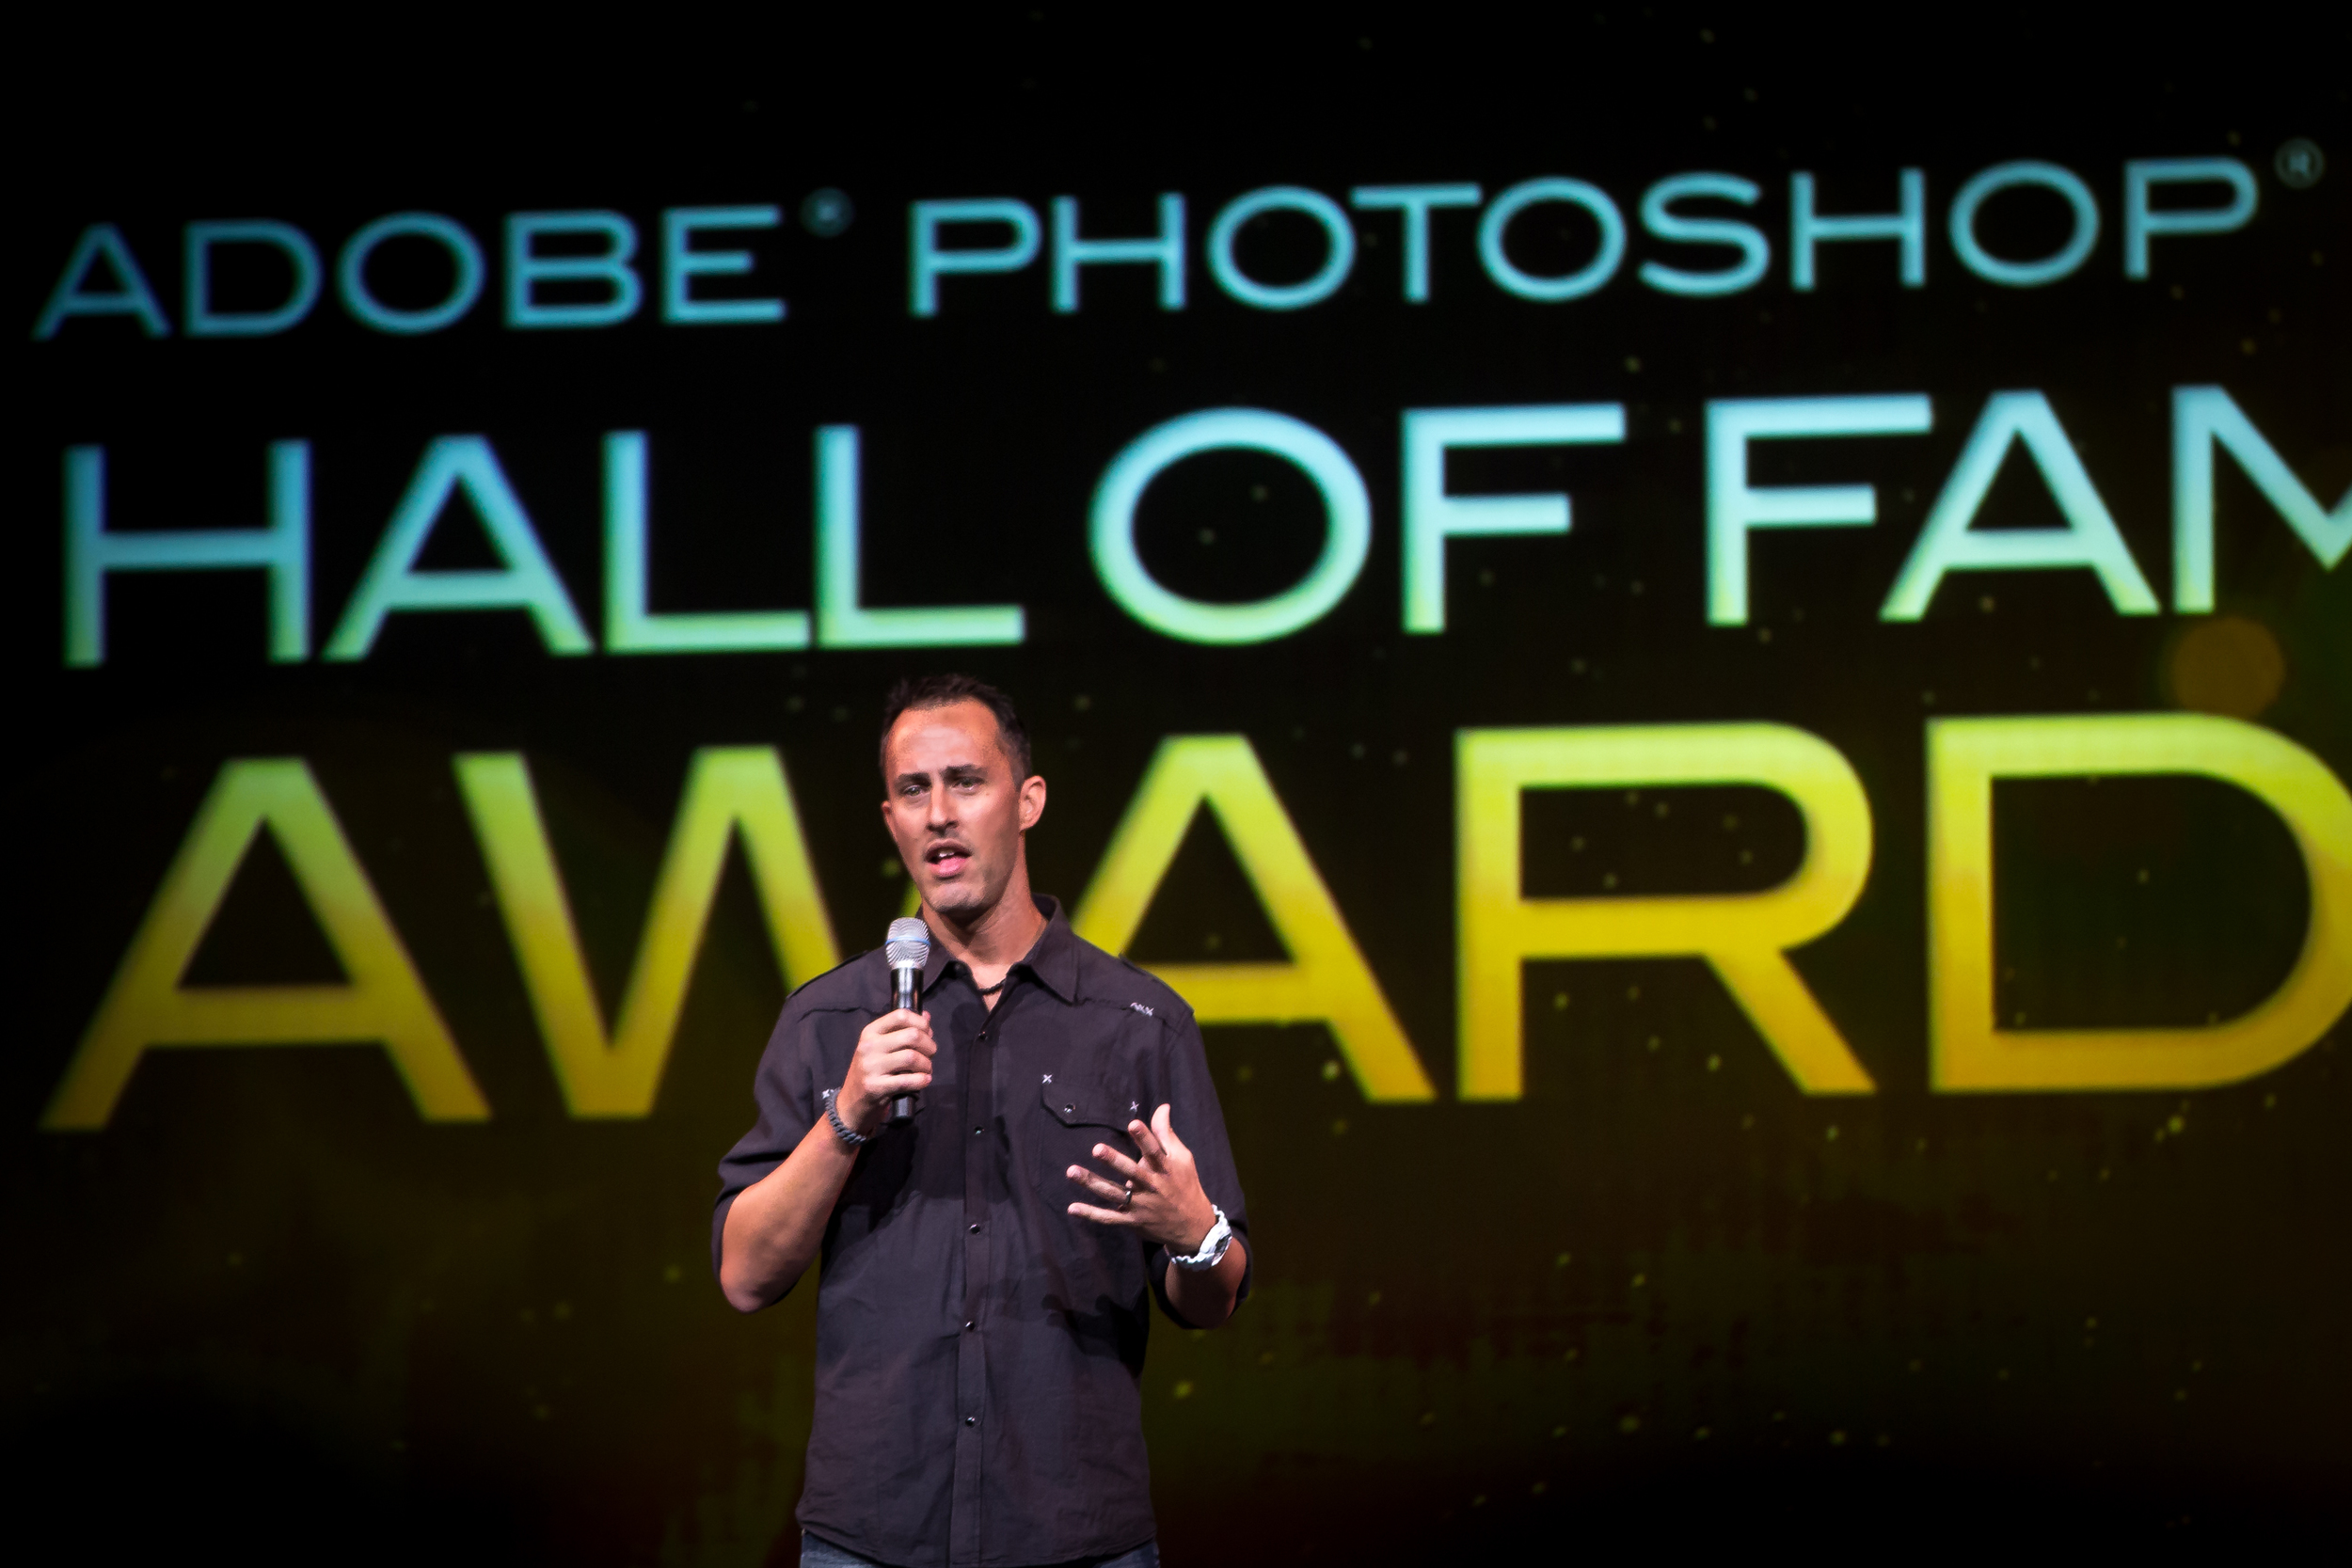 Matt Kloskowski being inducted into the Adobe Photoshop Hall of Fame.